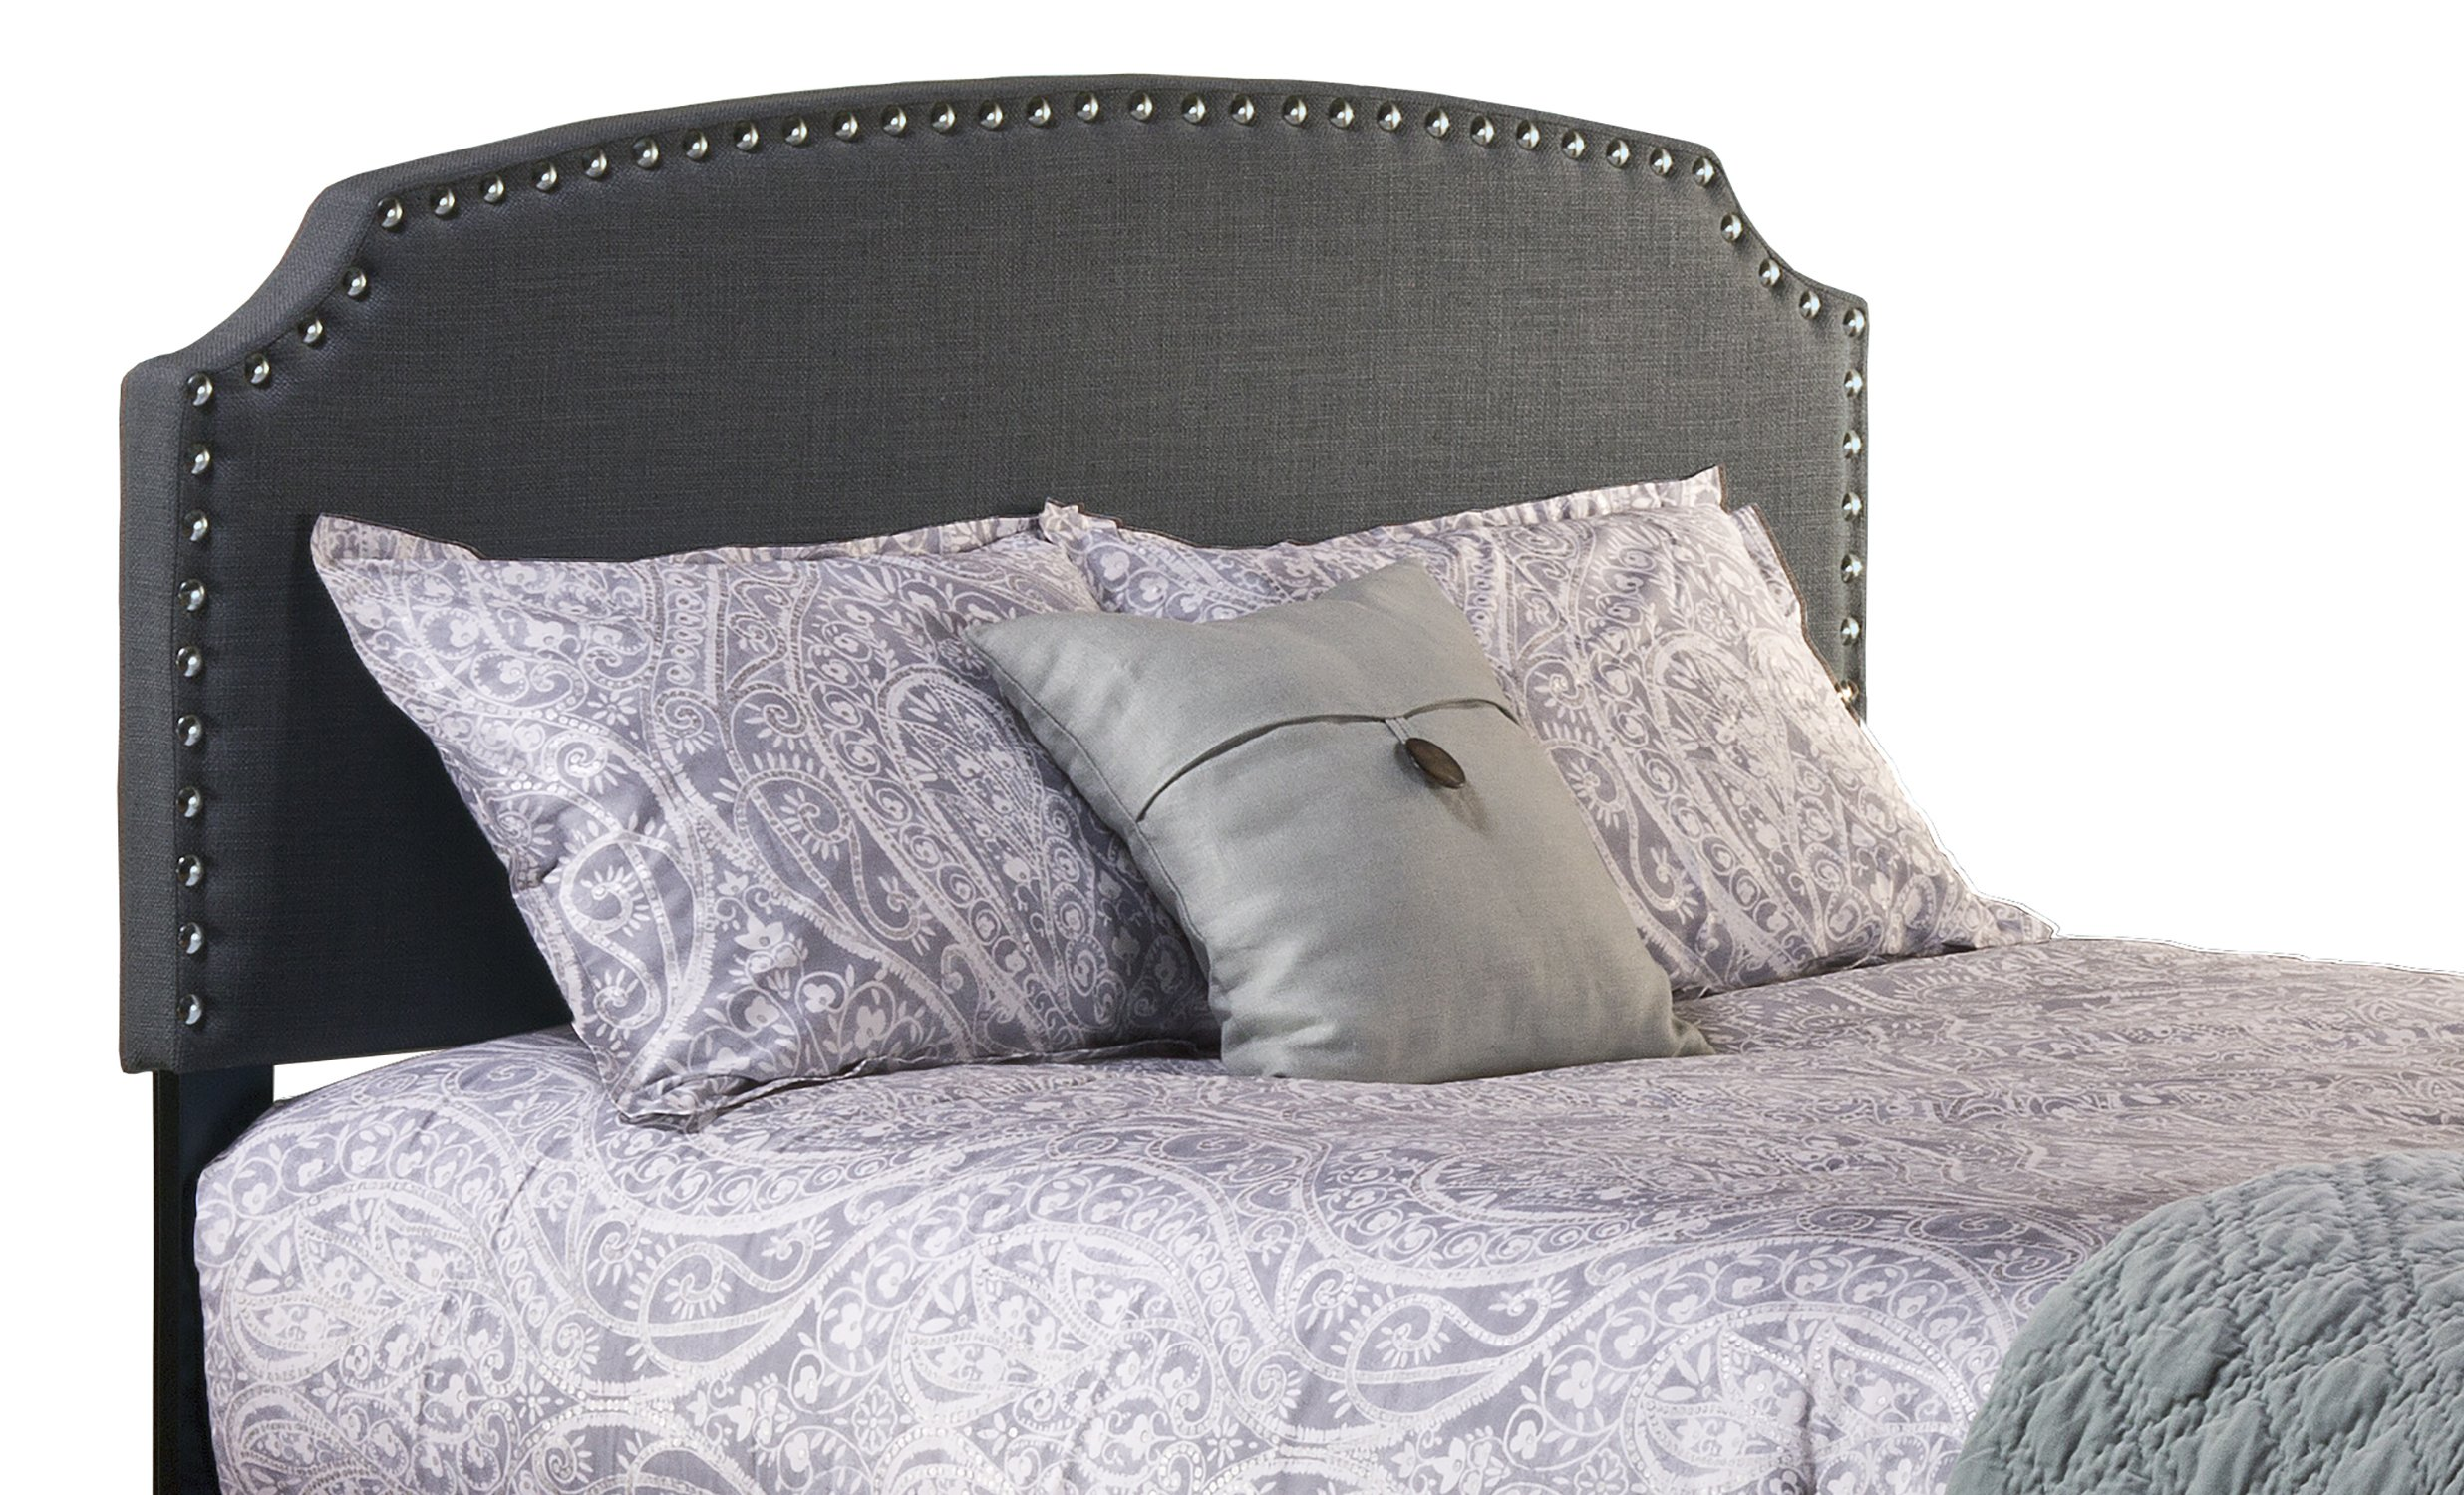 Hillsdale Furniture Hillsdale Lani Upholstered Without Bed Frame, Dark Linen Gray Full Headboard,